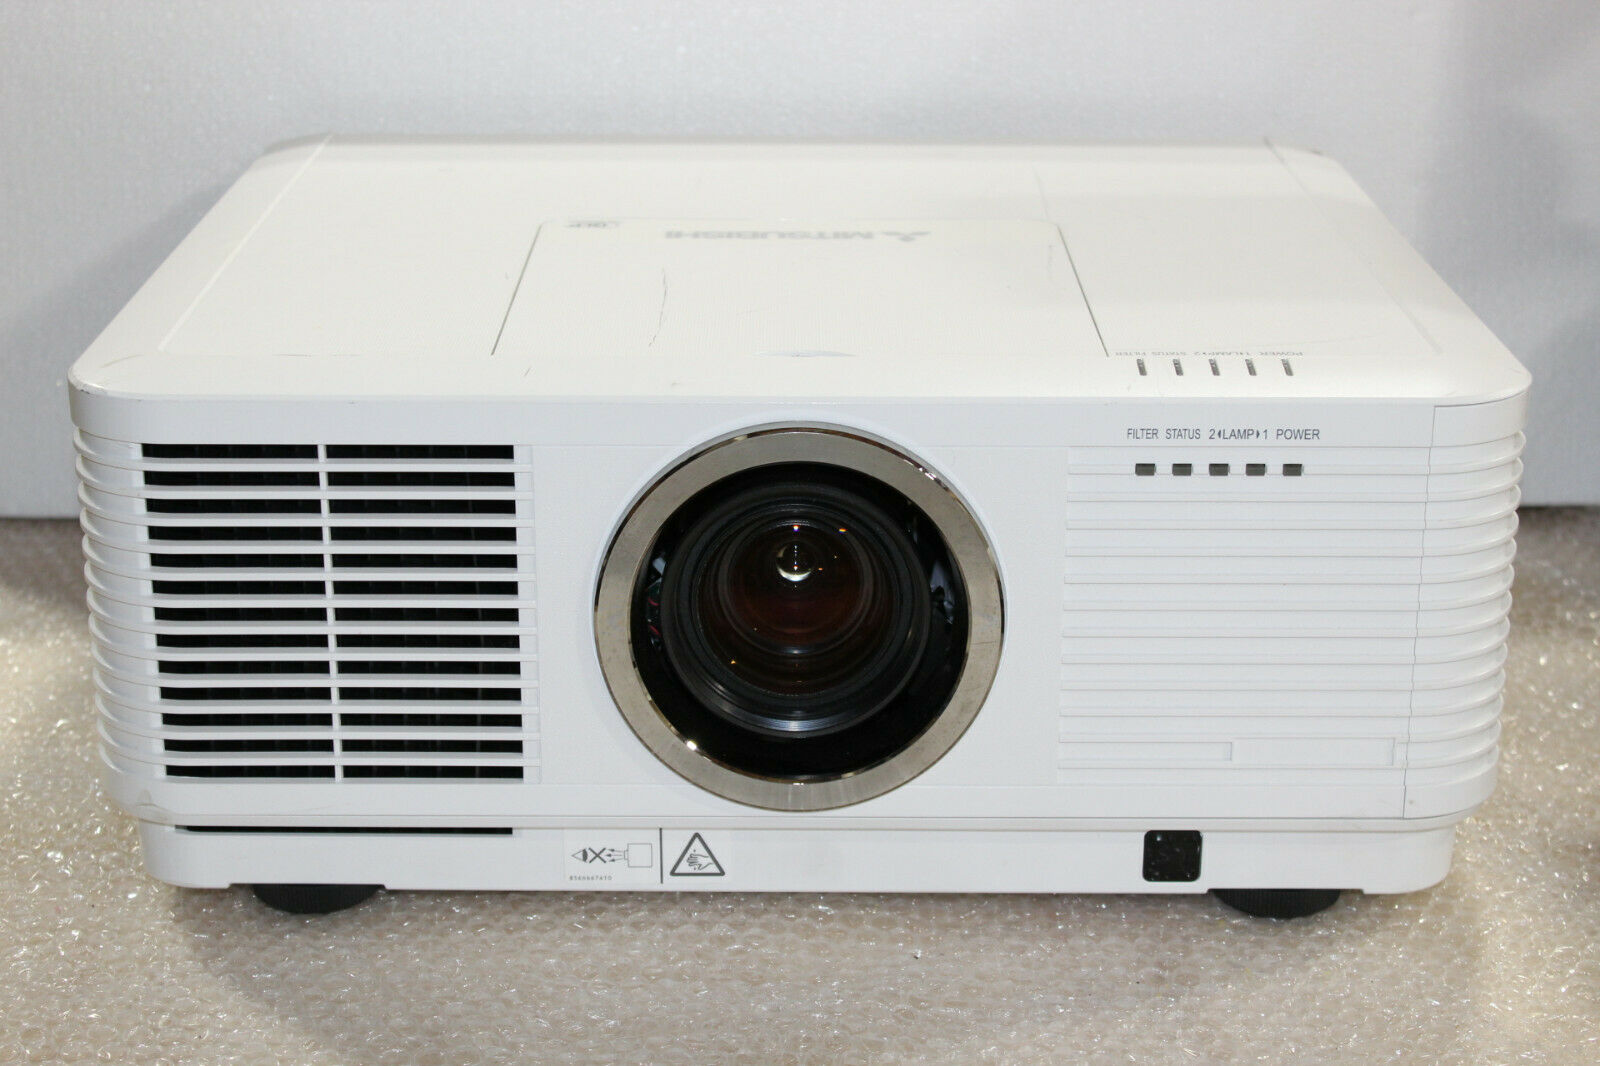 Mitsubishi UD8850U Full HD WUXGA Large Venue Theater Projector - 7500 Lumens!. Available Now for 1200.00